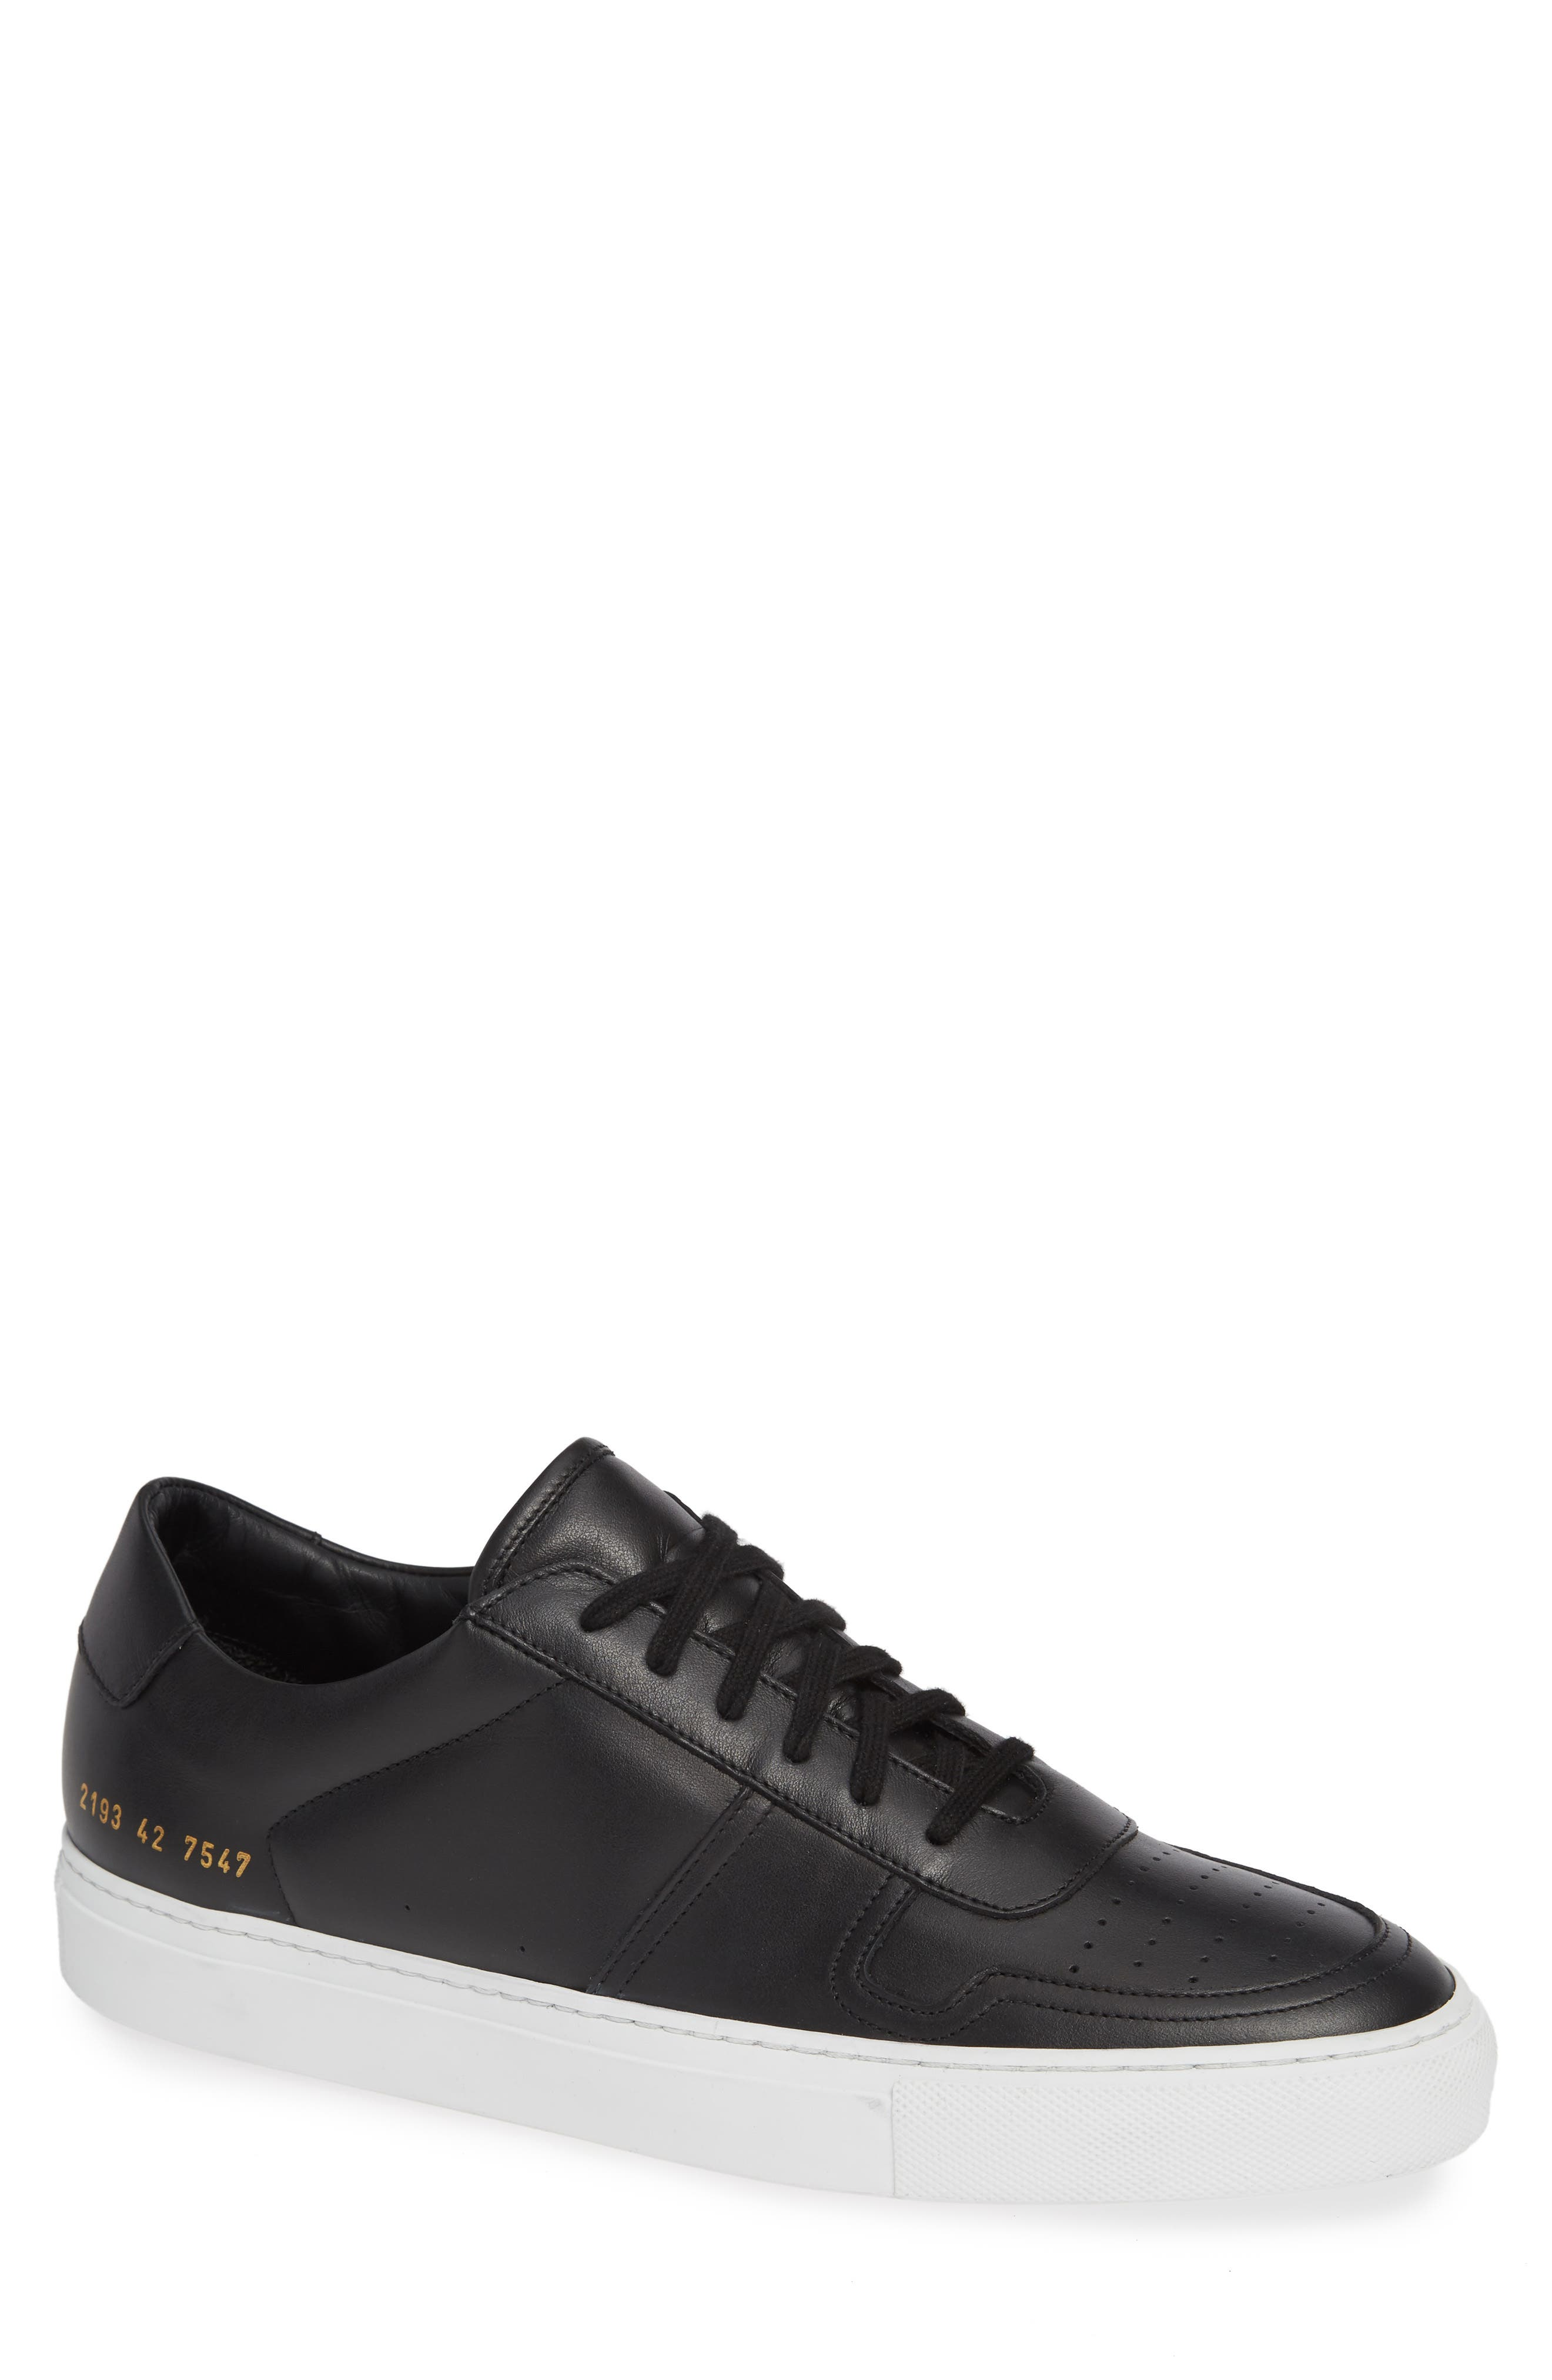 COMMON PROJECTS, Bball Low Top Sneaker, Main thumbnail 1, color, BLACK